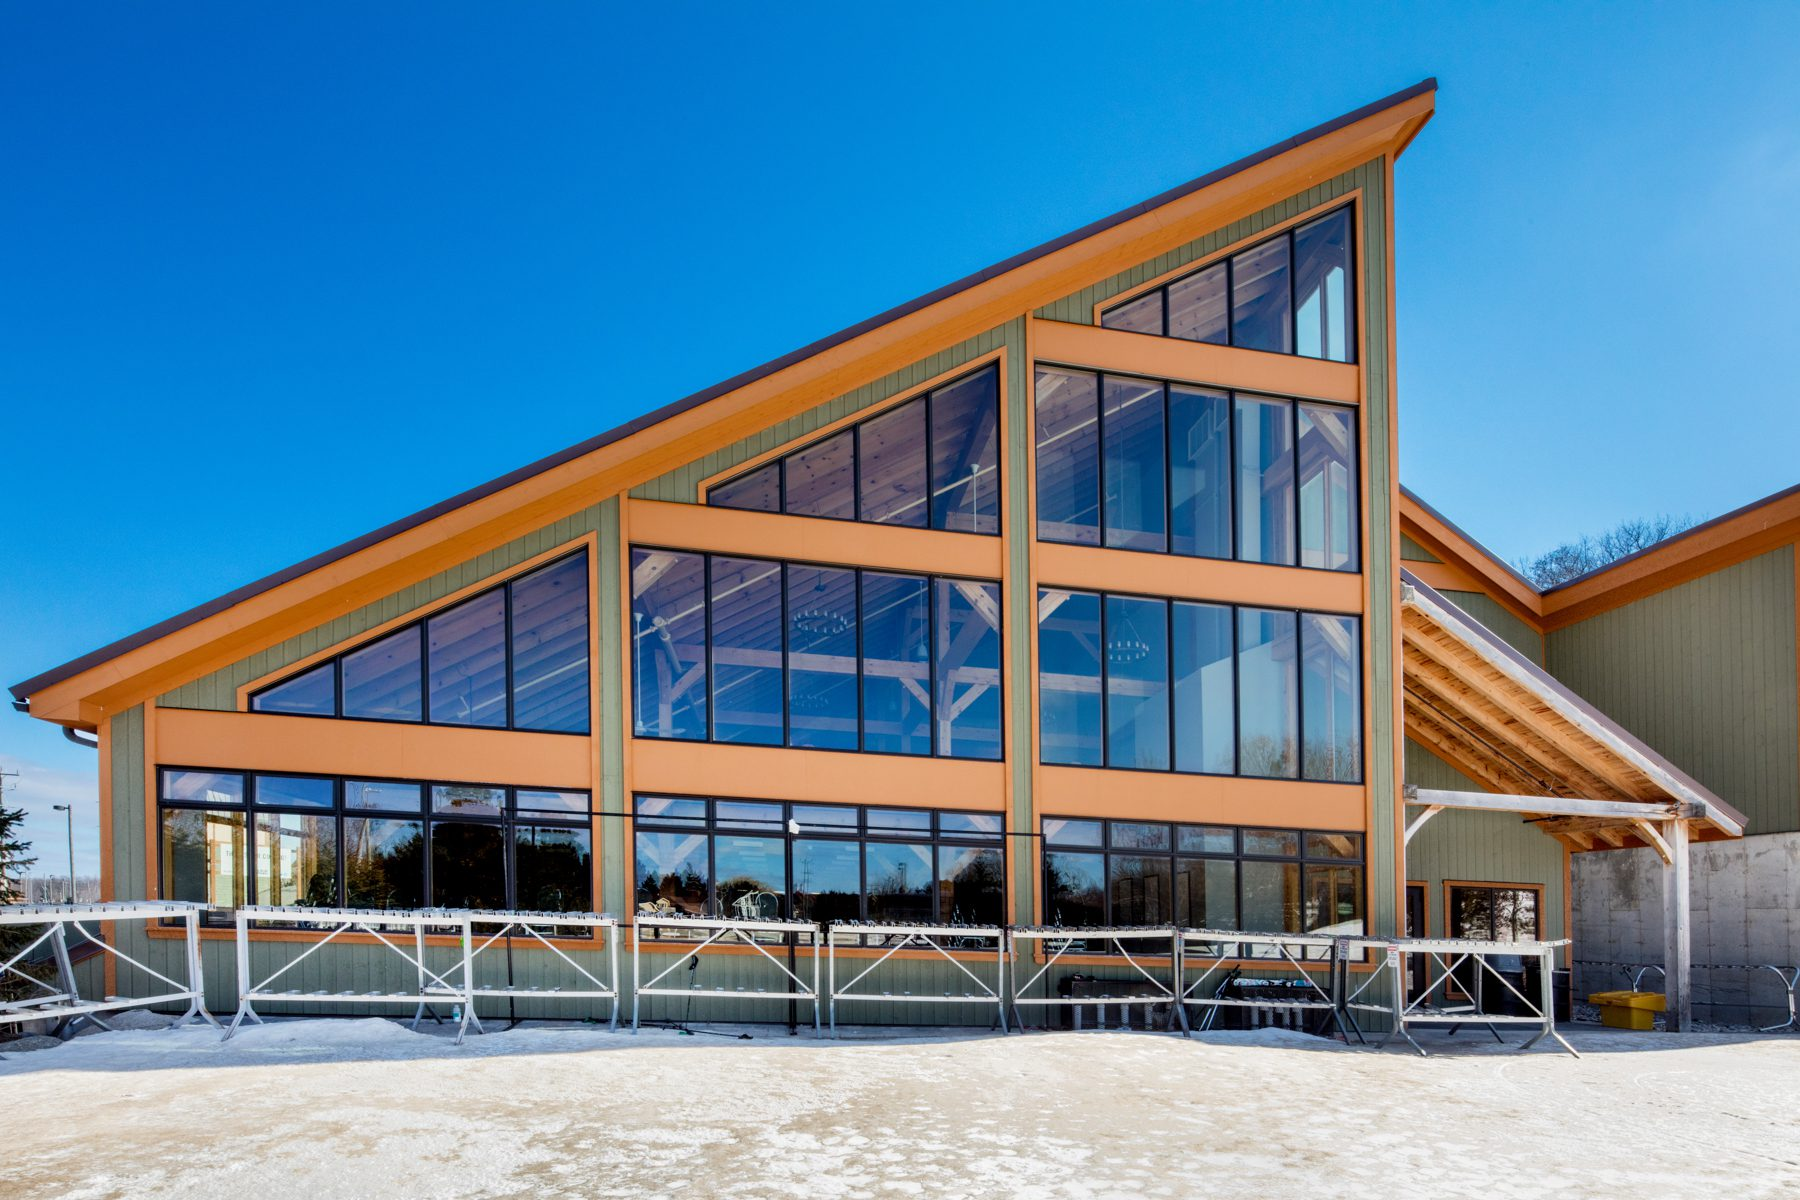 Normerica Timber Frames, Commercial Projects, Blue Mountain South Lodge, Exterior, Collingwood, Ontario, Ski Resort, Clubhouse